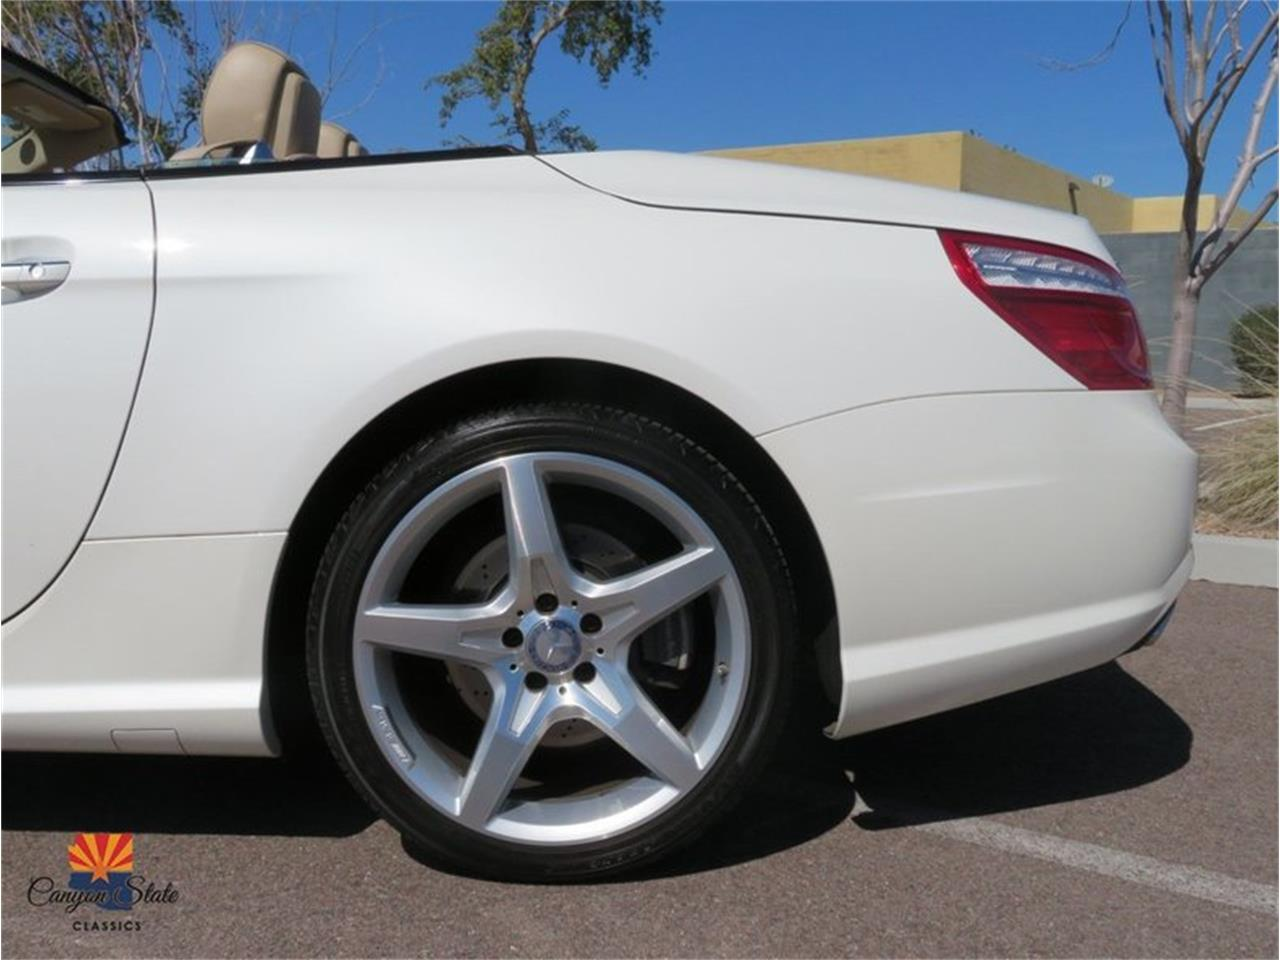 2013 Mercedes-Benz SL-Class for sale in Tempe, AZ – photo 25